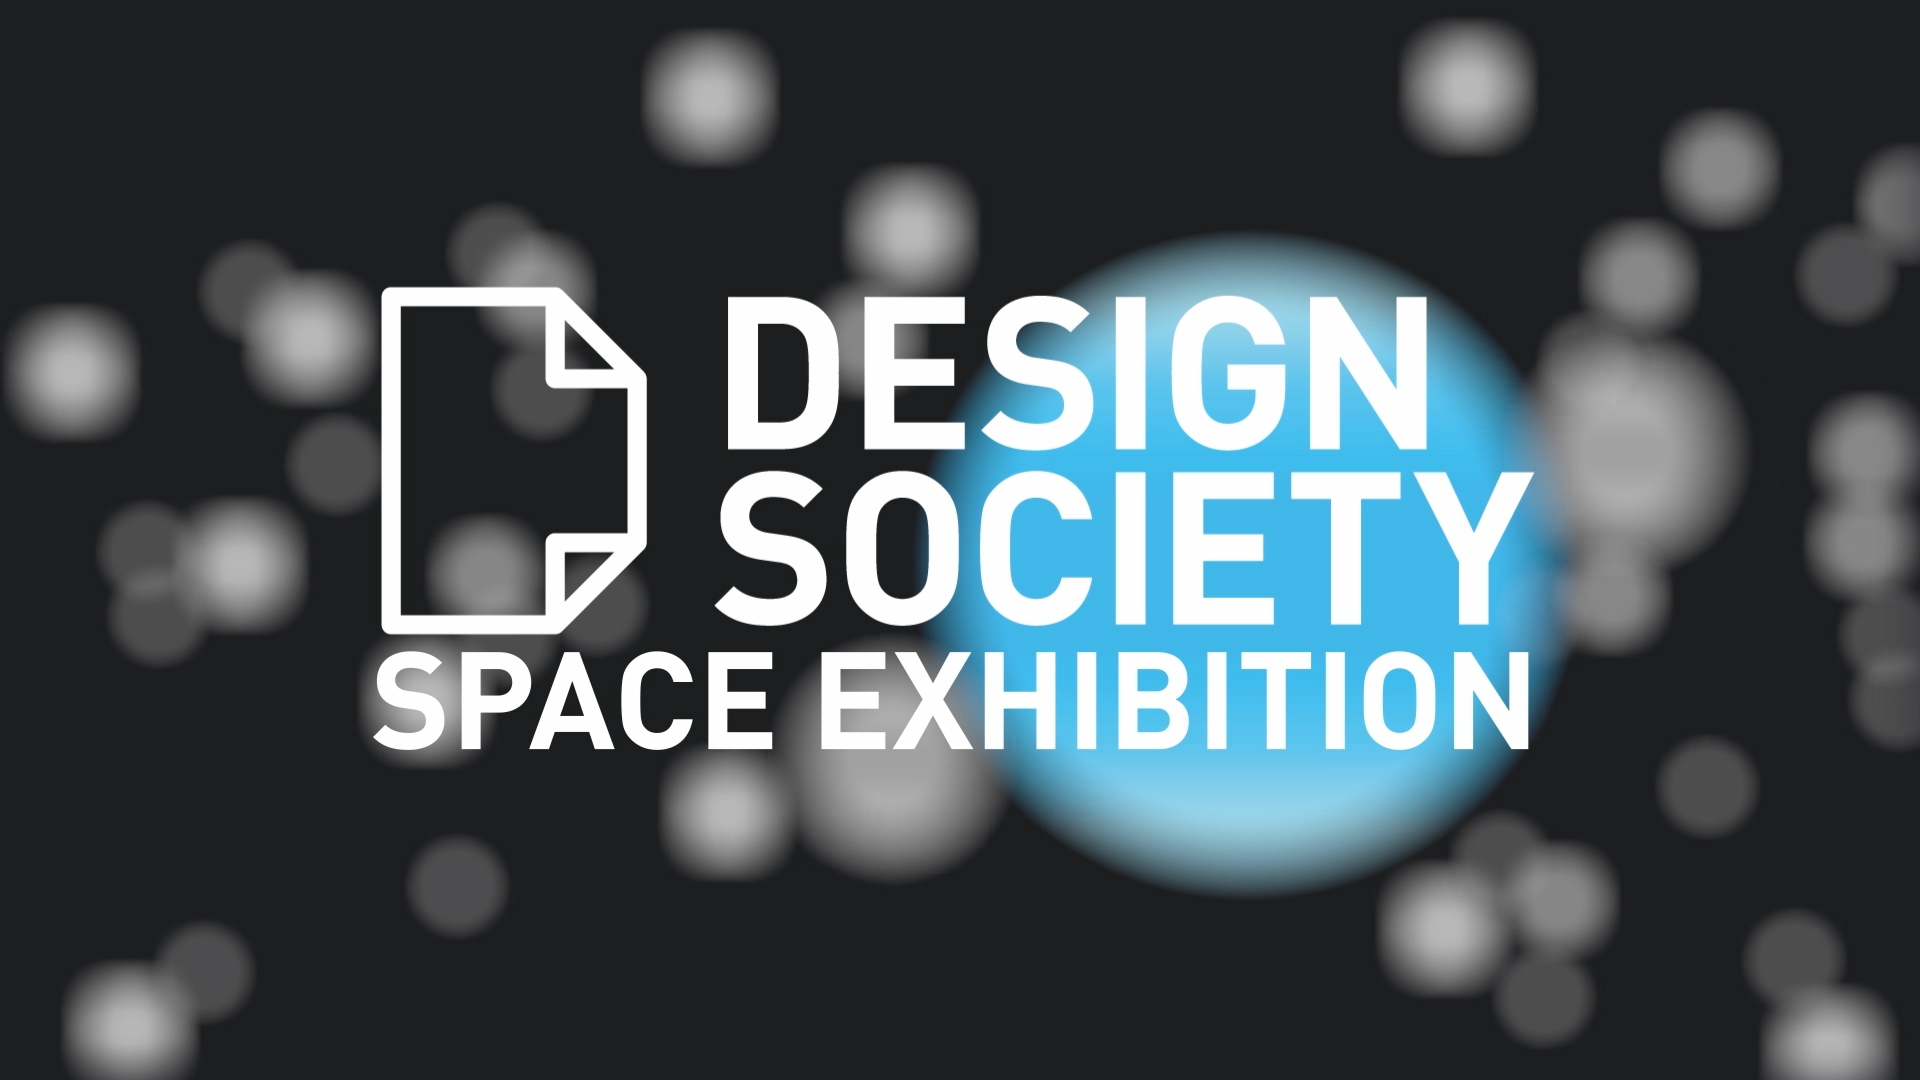 Design Society Plymouth Space Exhibition